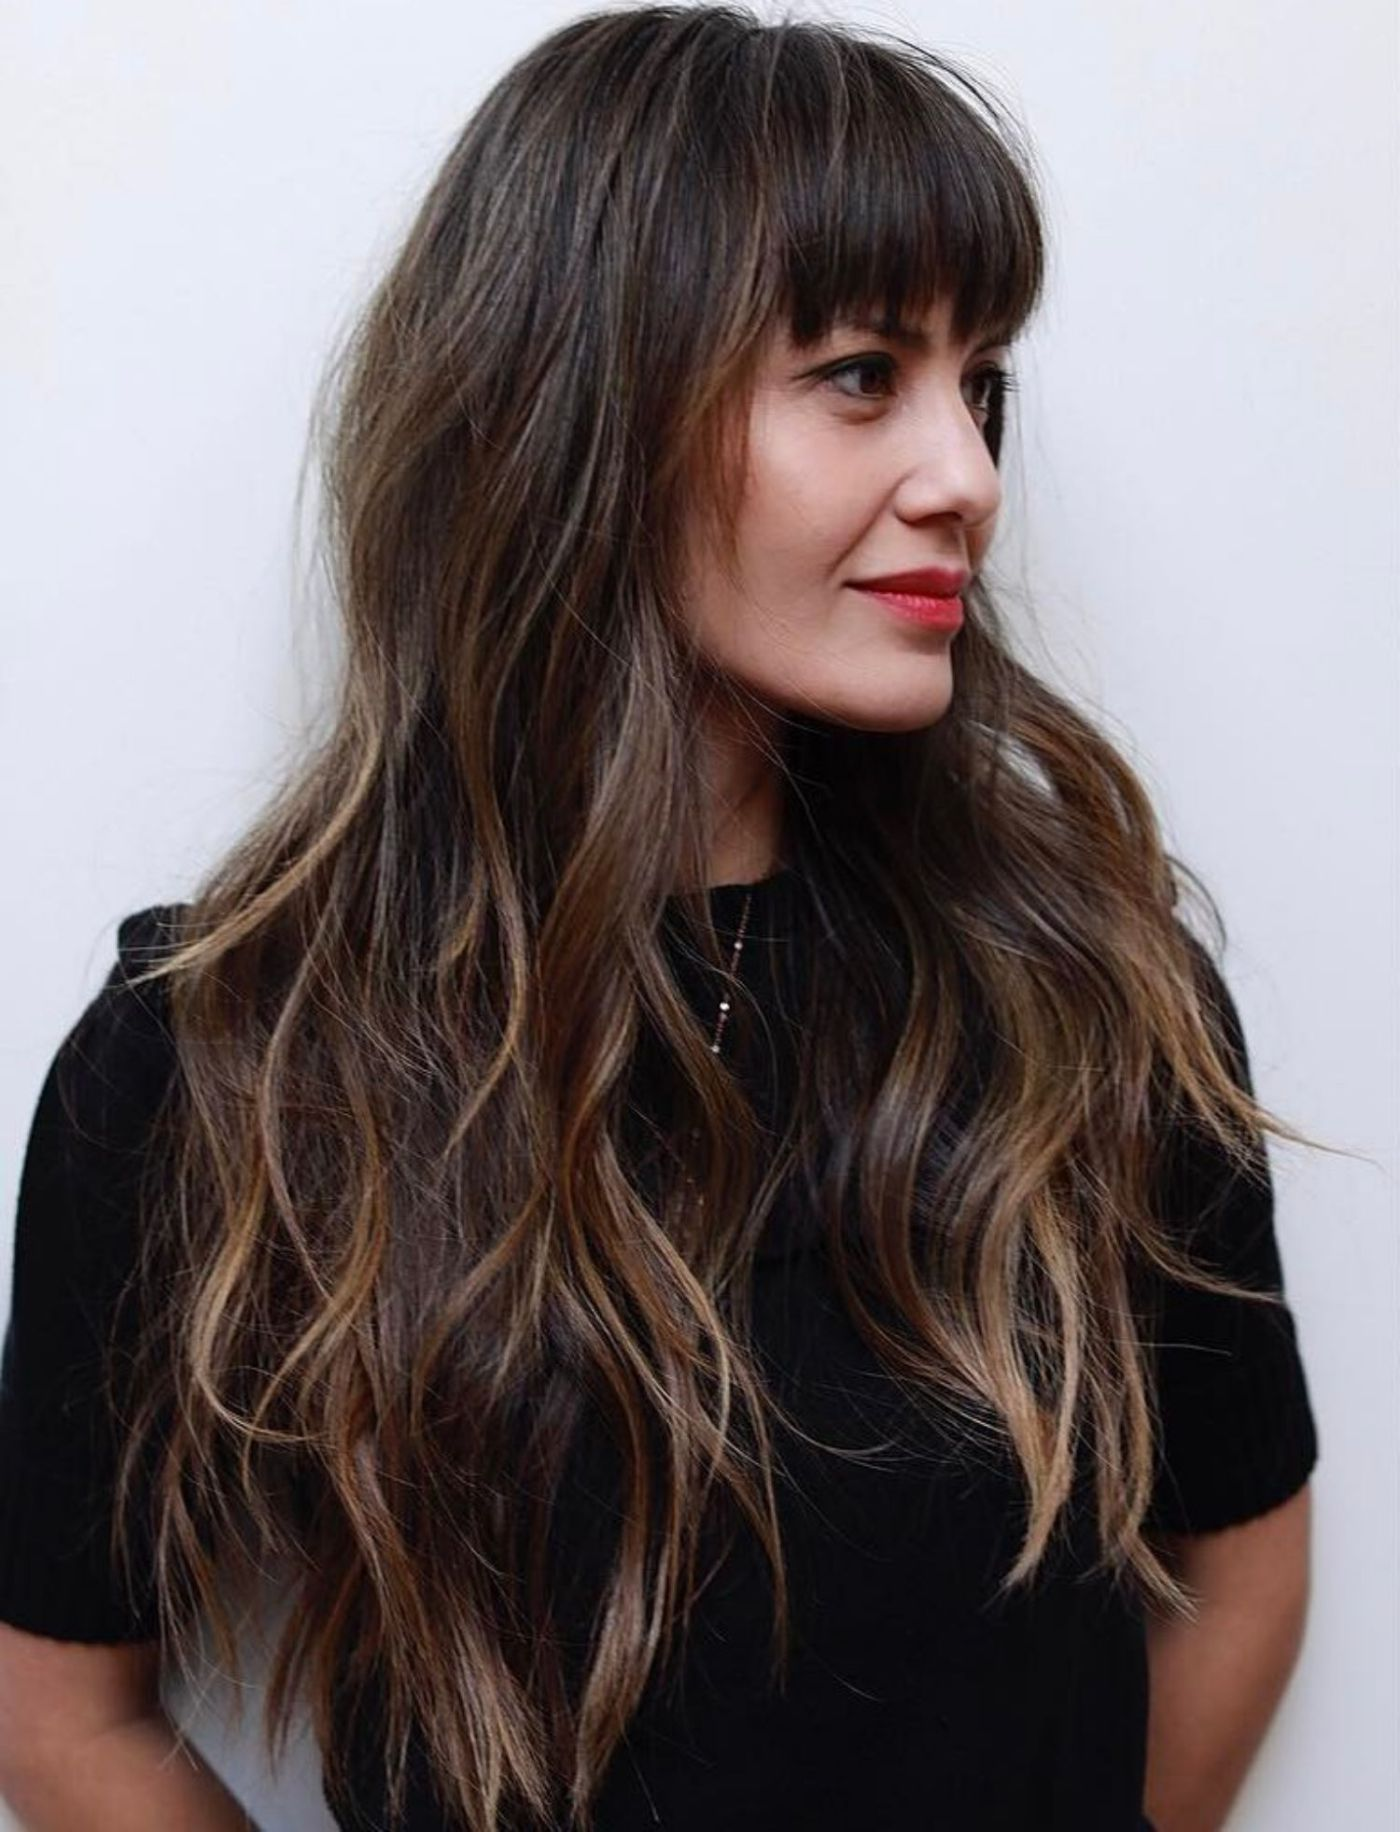 Long Hair with Bangs